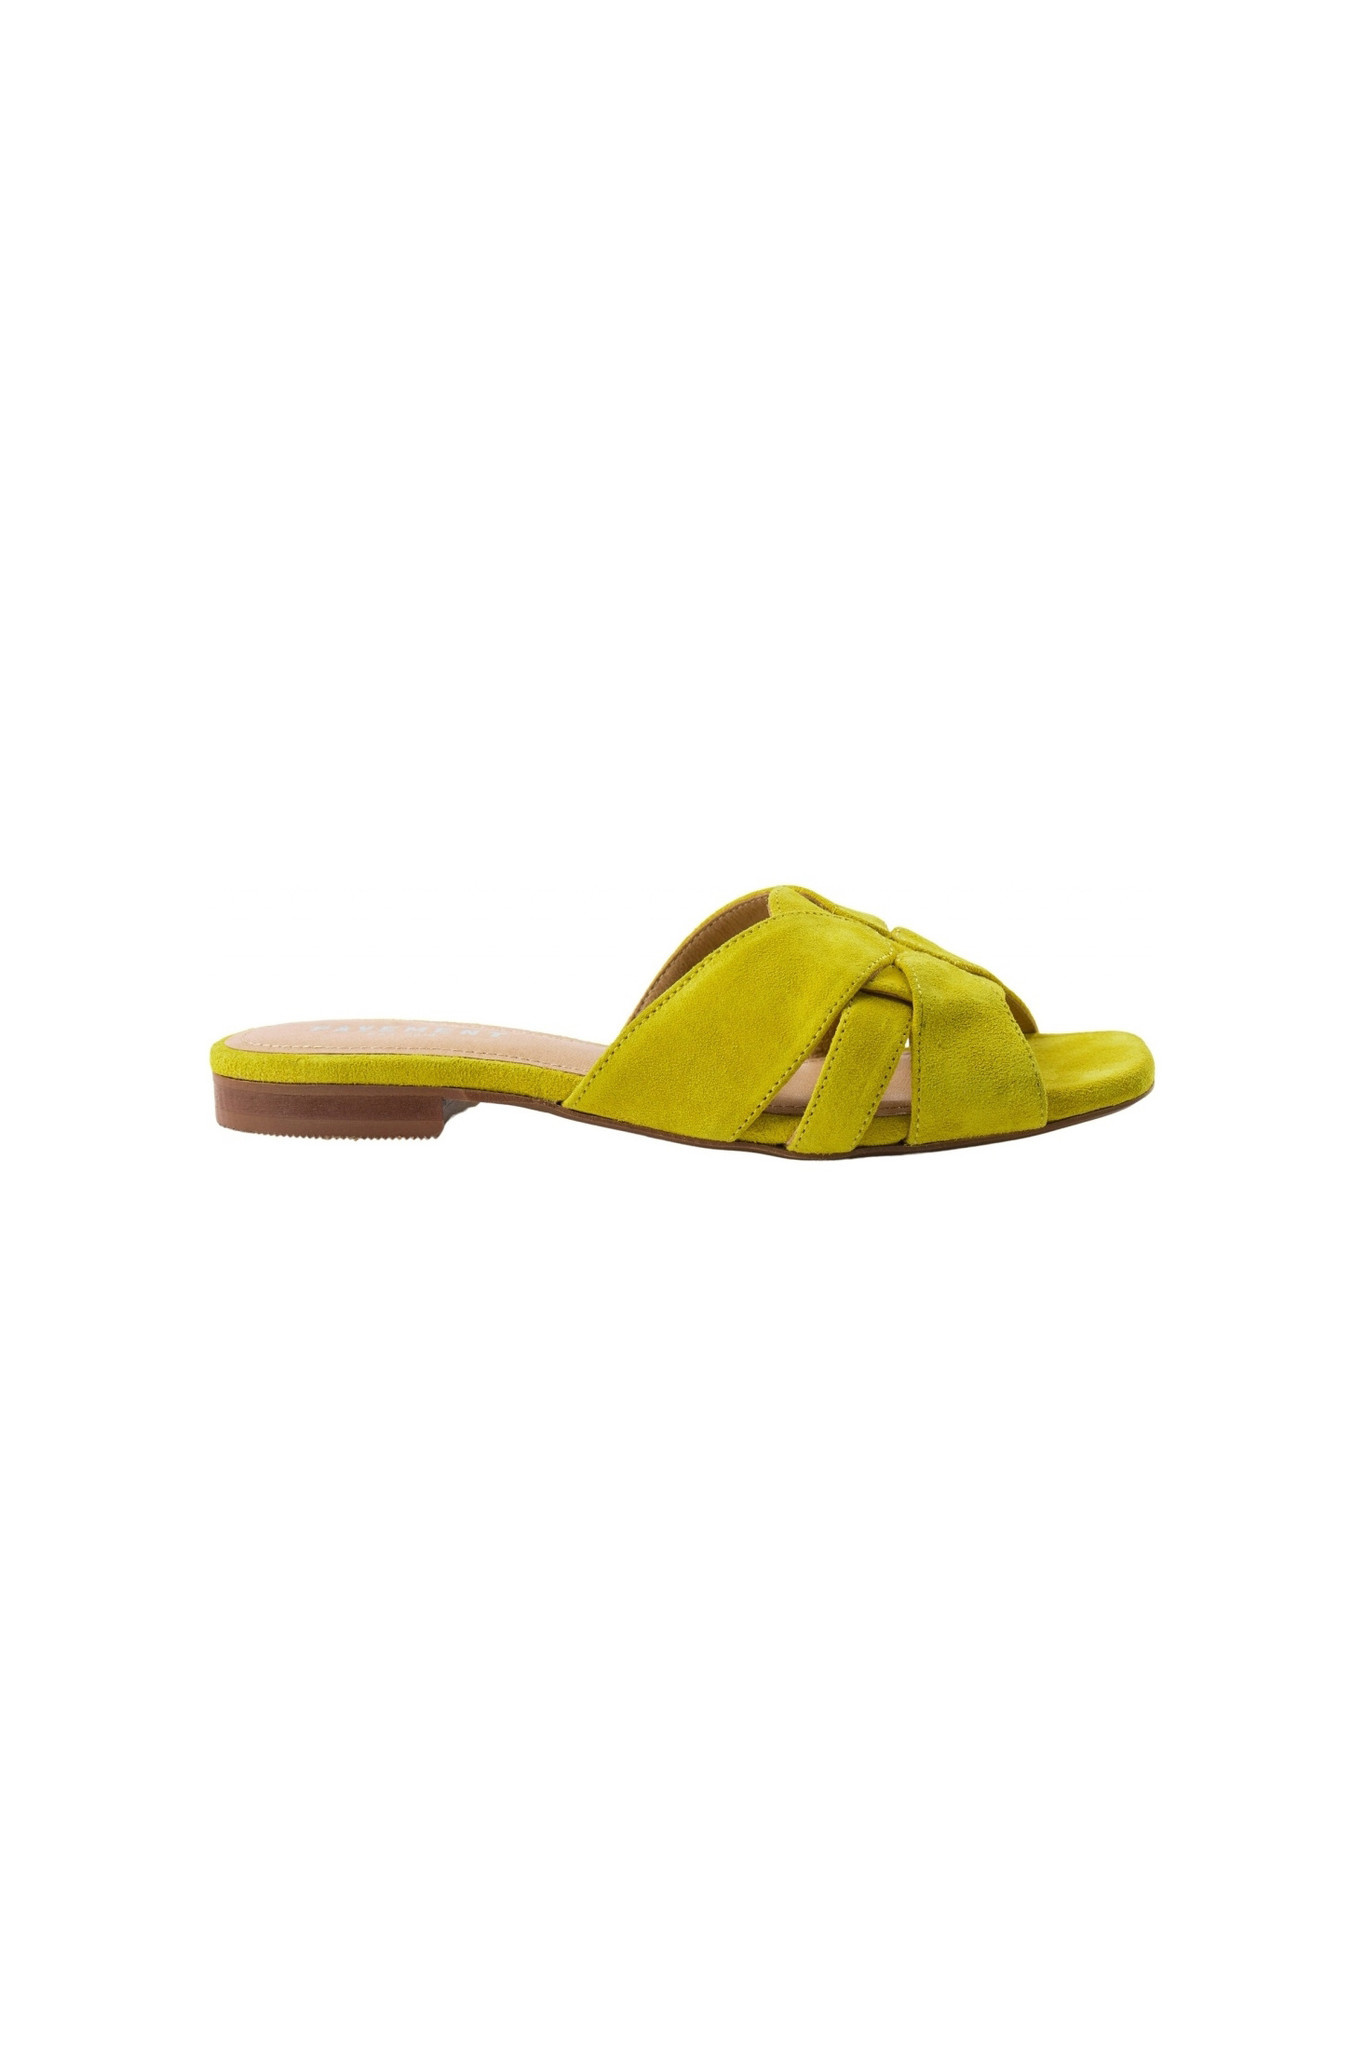 Gin Slipper - Yellow Suede-1